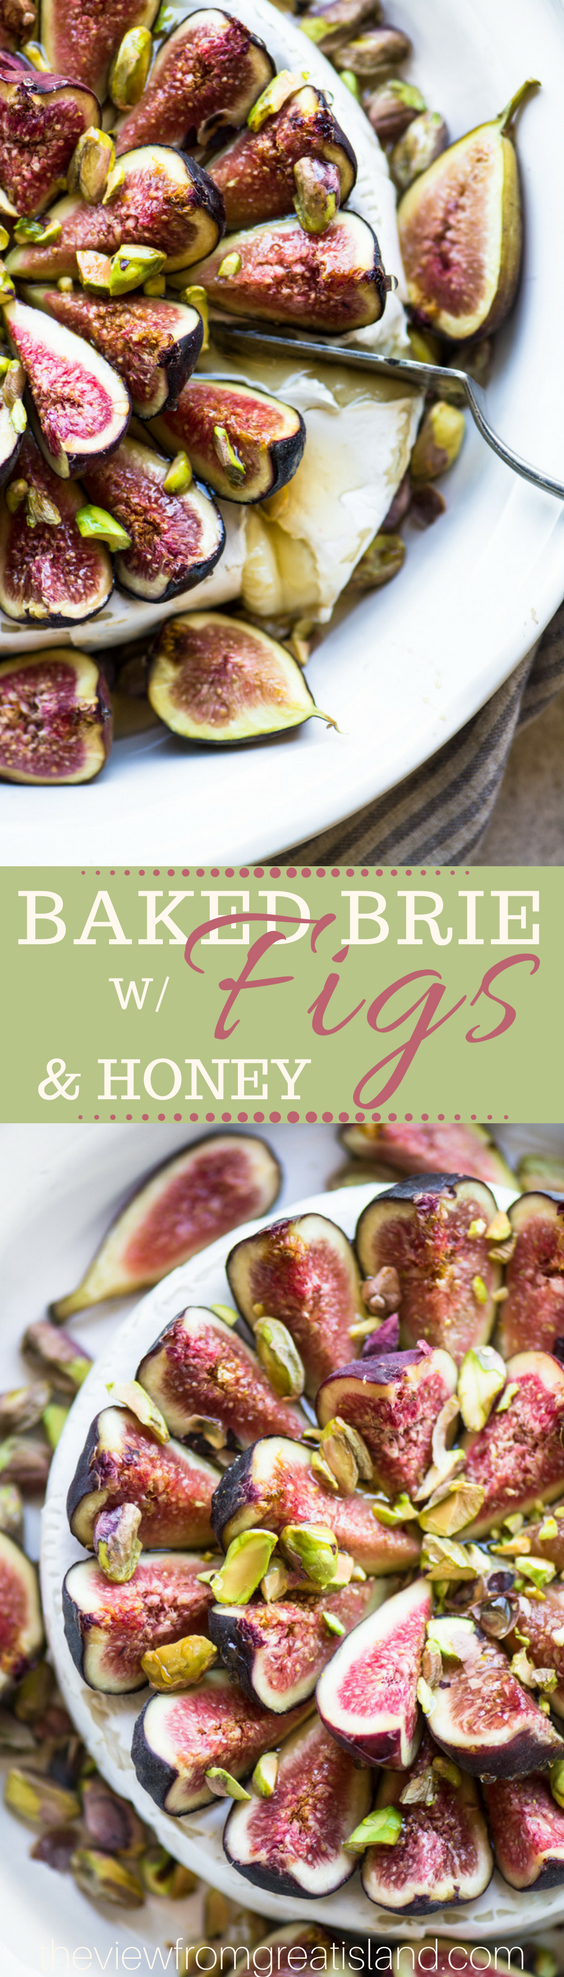 Easy Baked Brie with Figs and Honey ~ this simple baked cheese is your ultimate Fall or holiday appetizer, but it's so rich and decadent you could even serve it for dessert! #appetizer #figs #bakedcheese #hotappetizer #holidayappetizer #bakedBrie #partyfood #Christmasappetizer #Thanksgiving #Thanksgivingappetizer #Christmas